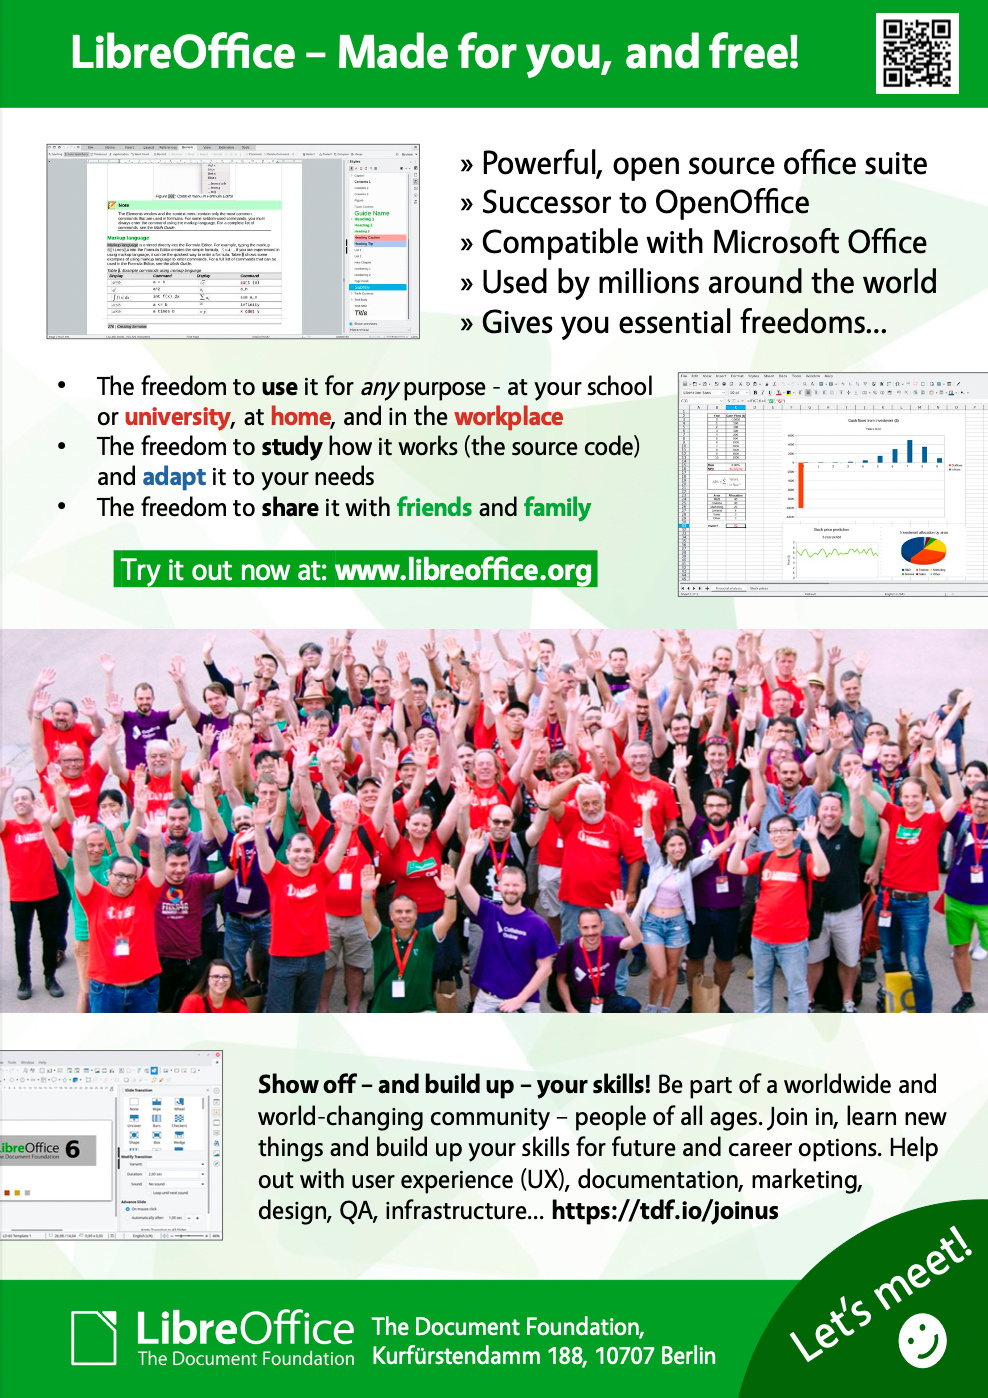 LibreOffice flyers for schools and universities – Help us to hand them out!